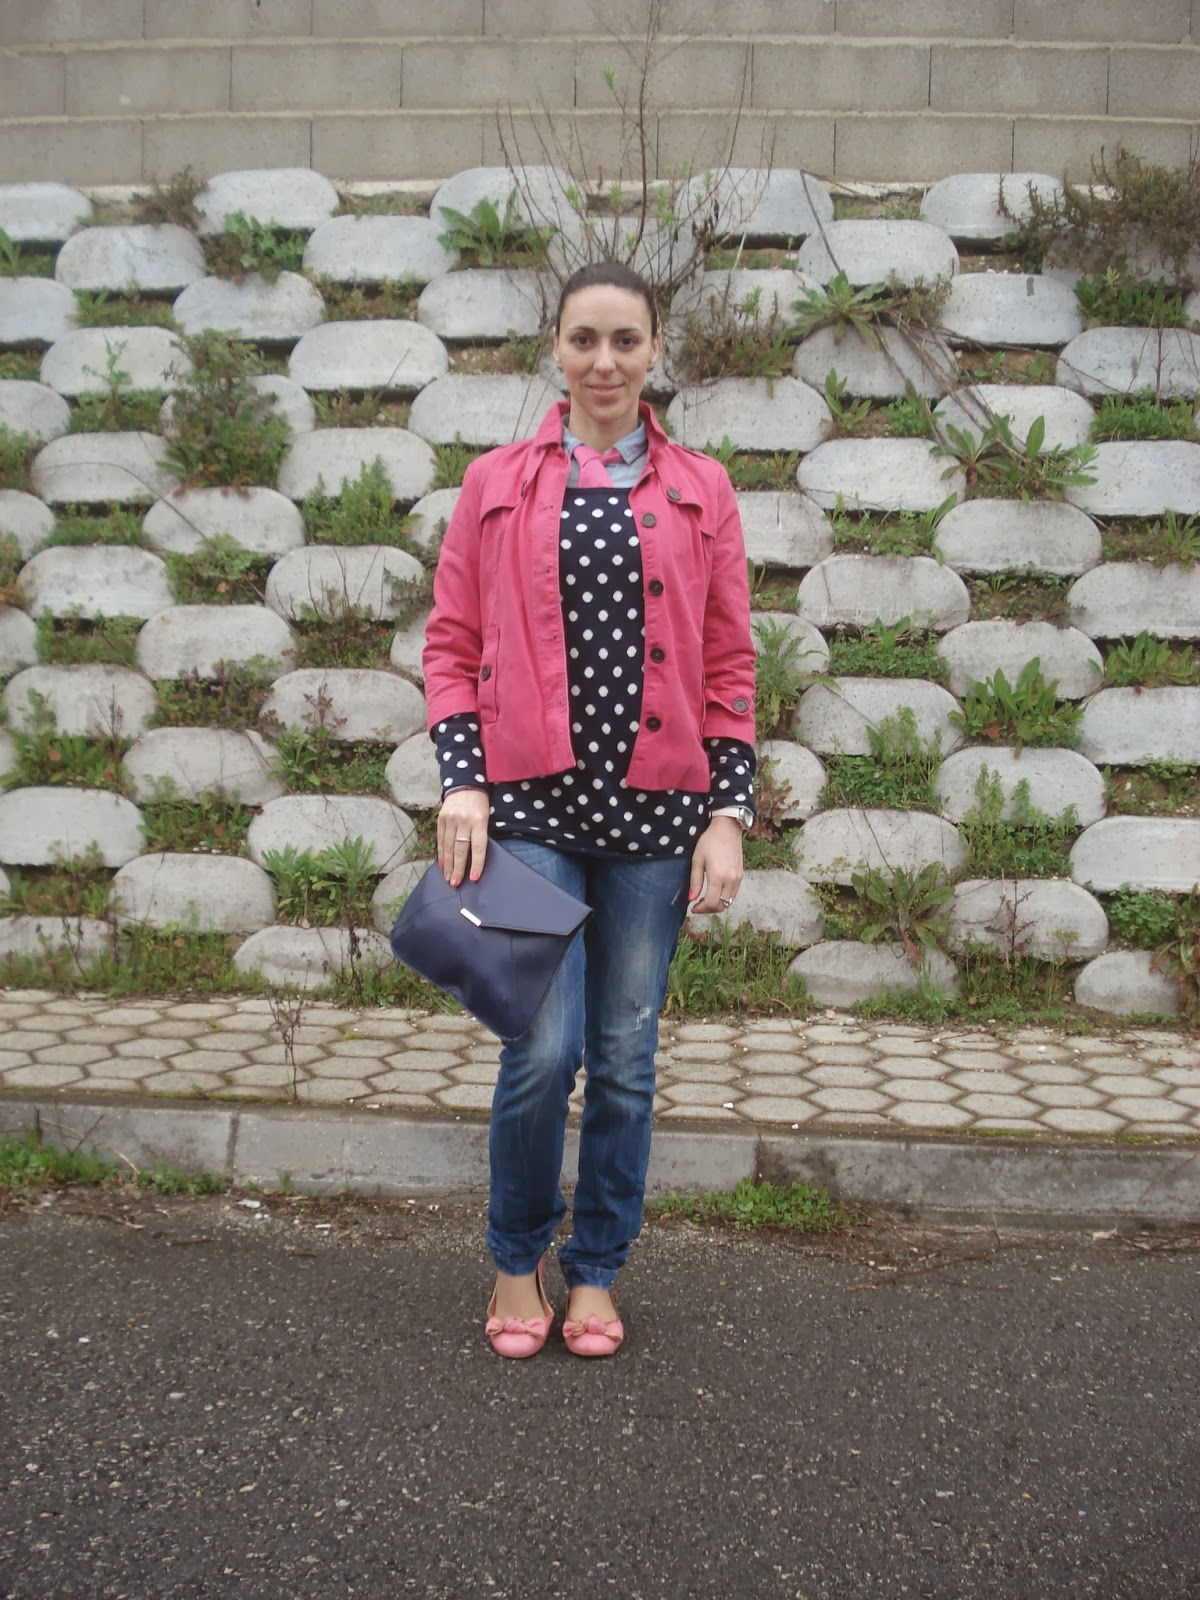 moda, sapatinho, 2014, 10, top, aveiro, portugal, blog, blogue, blogger, summer, verão, fashion, look